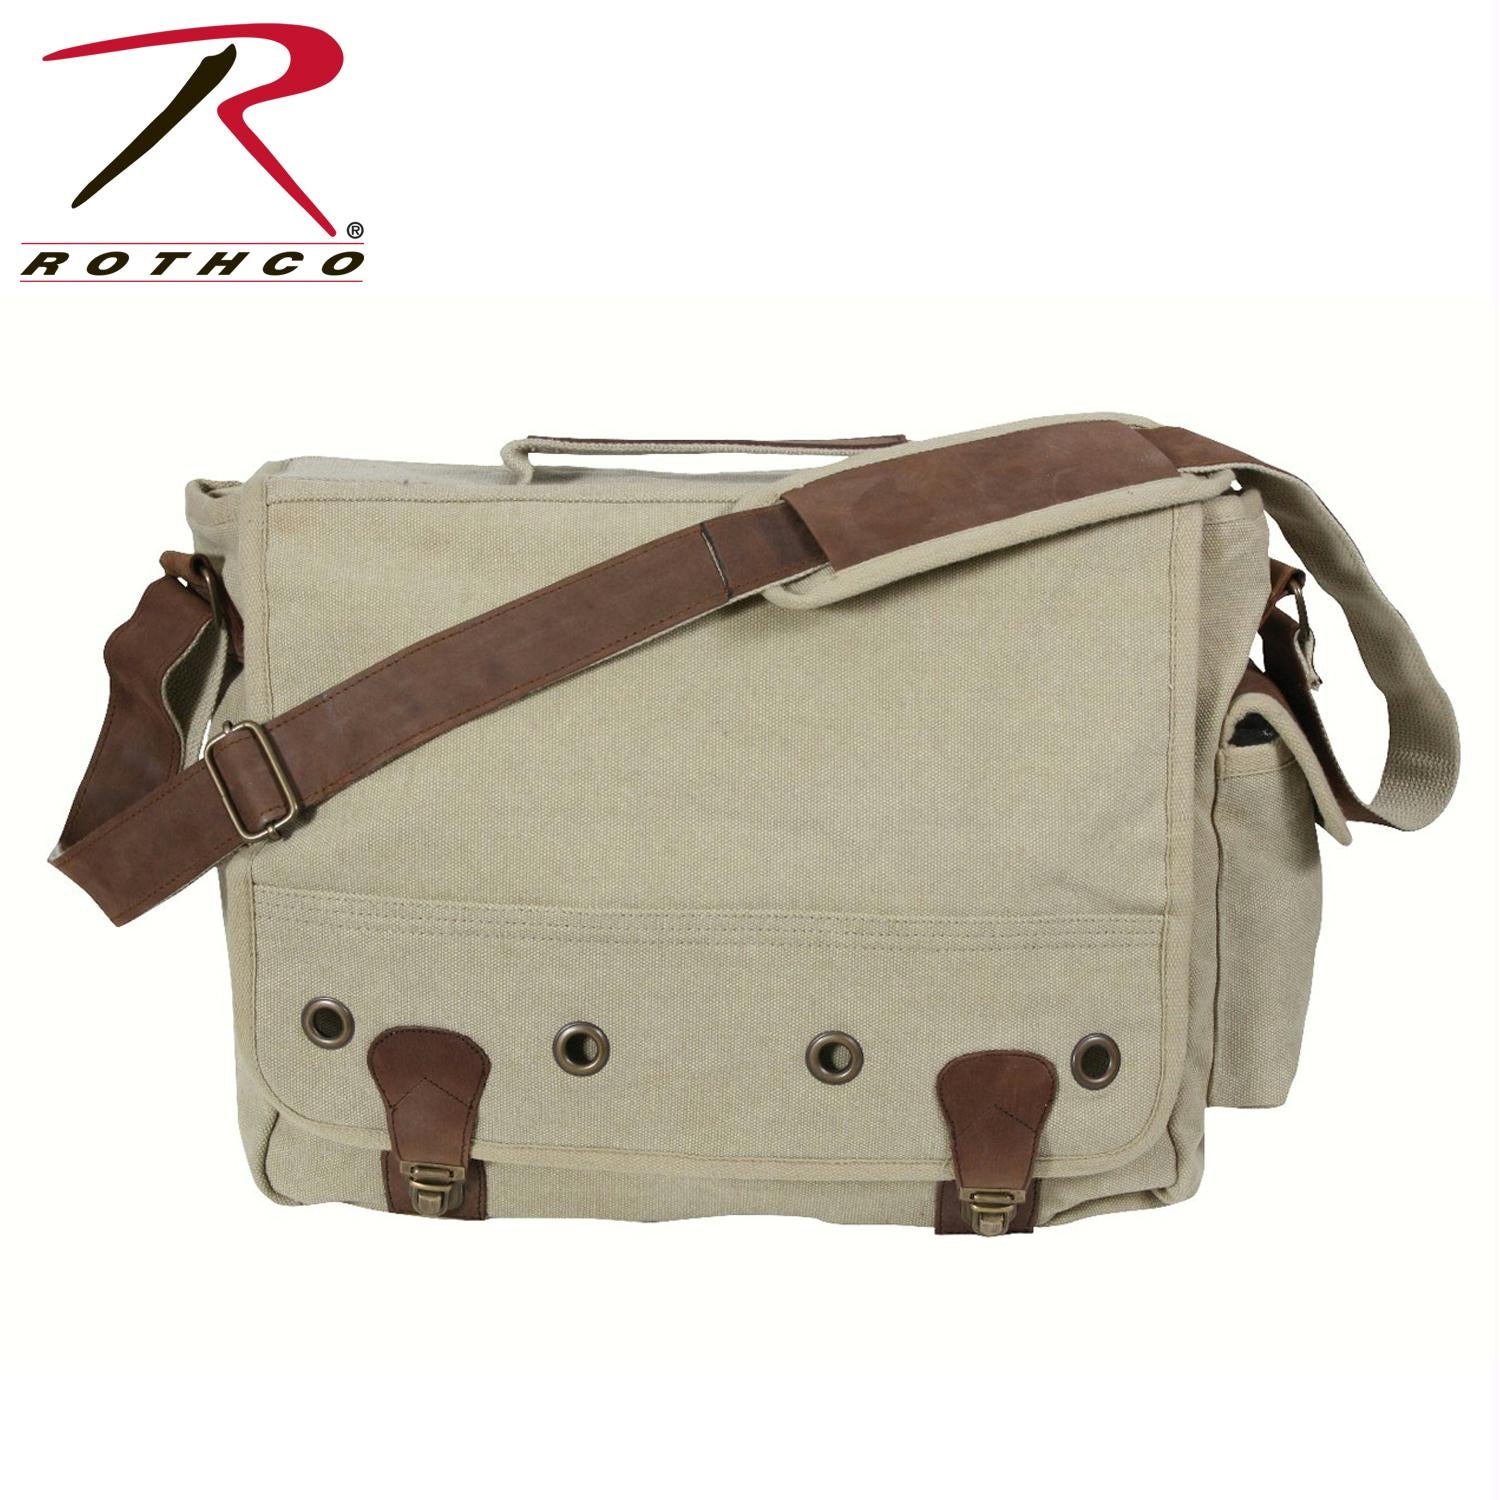 Rothco Canvas Trailblazer Laptop Bag - Khaki